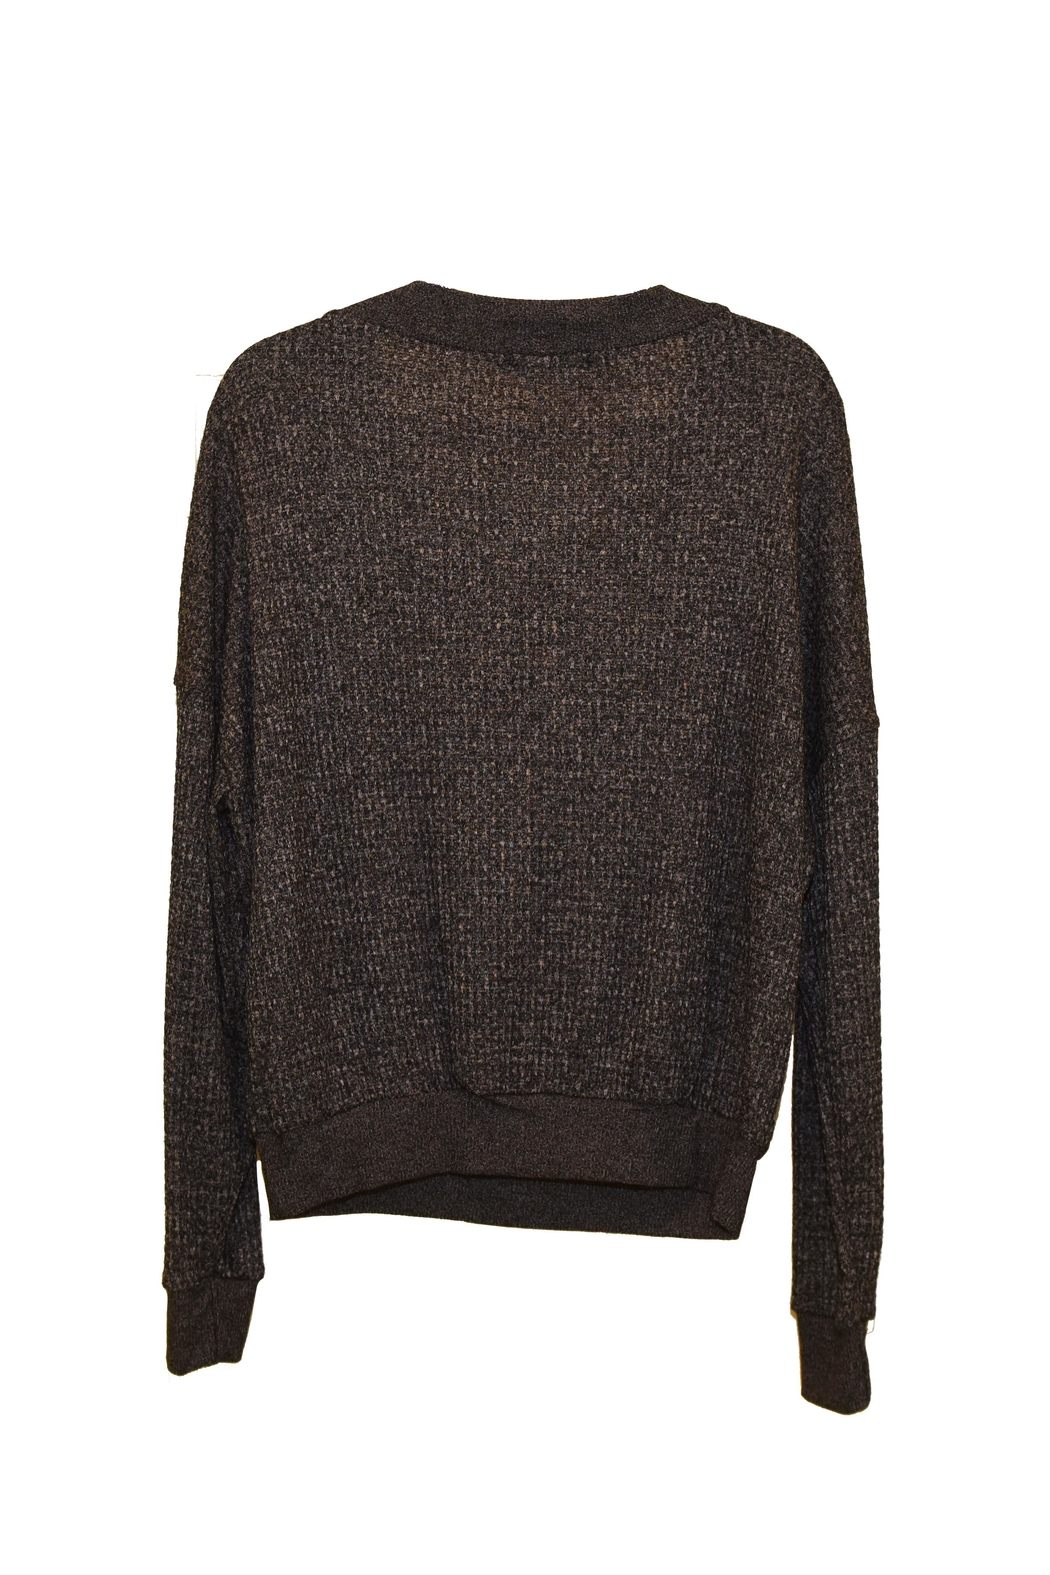 ENTI Knit Sweater - Front Full Image